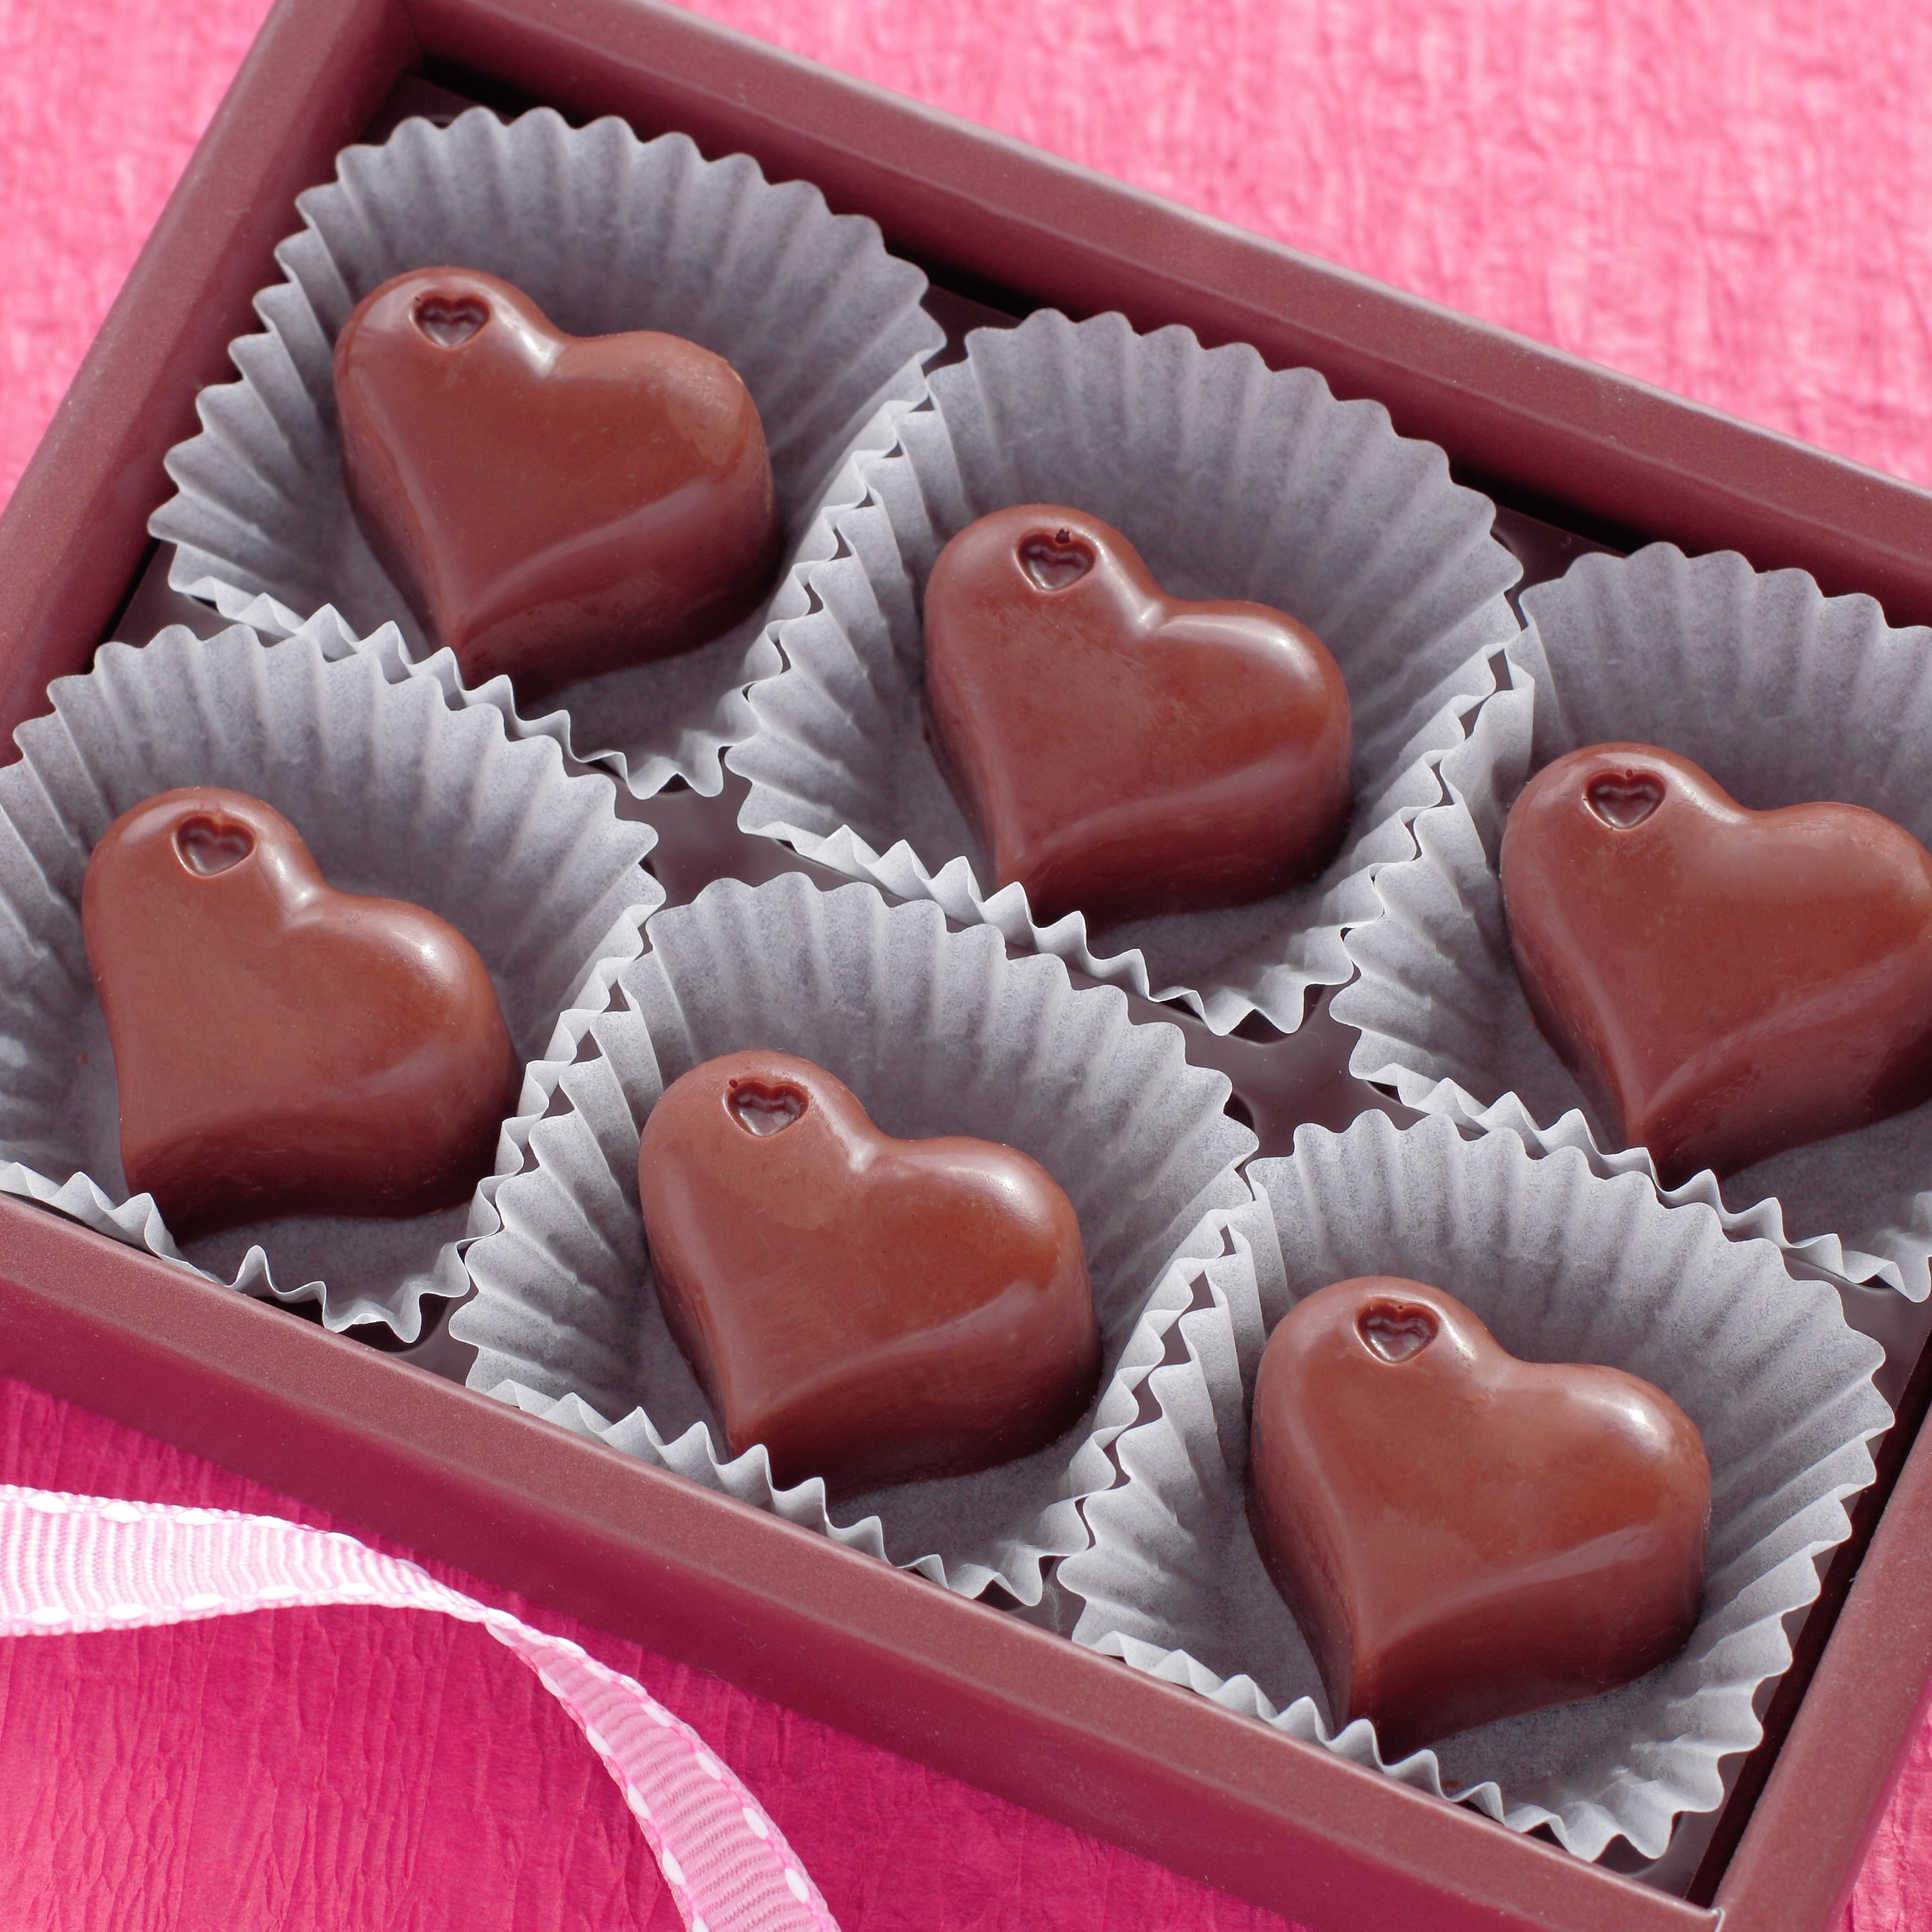 A box of heart shaped Valentine's Day chocolates.